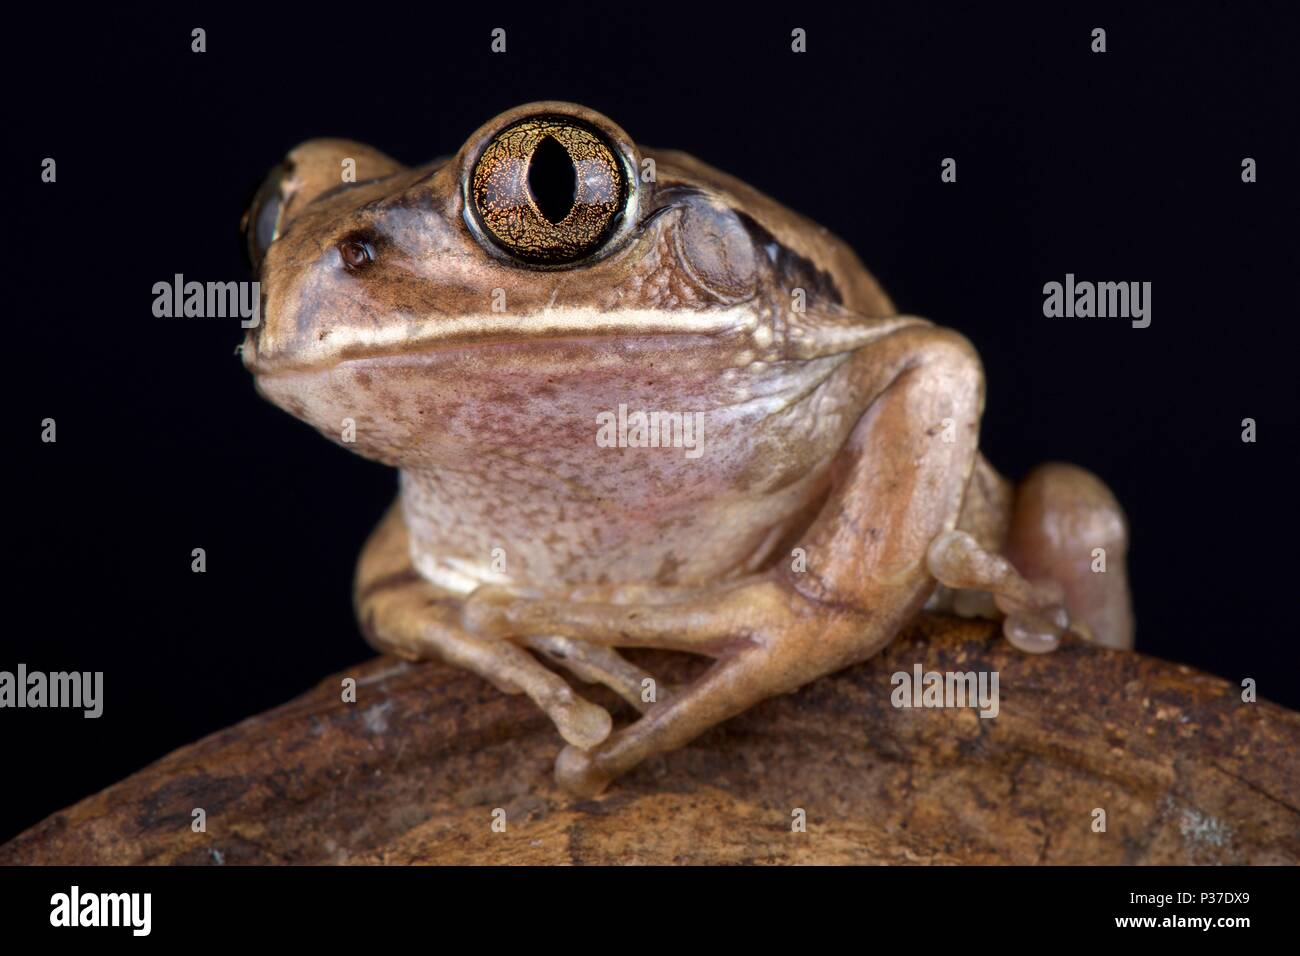 The Mozambique tree frog (Leptopelis mossambicus) is a large tree frog species found in Southern Africa. - Stock Image